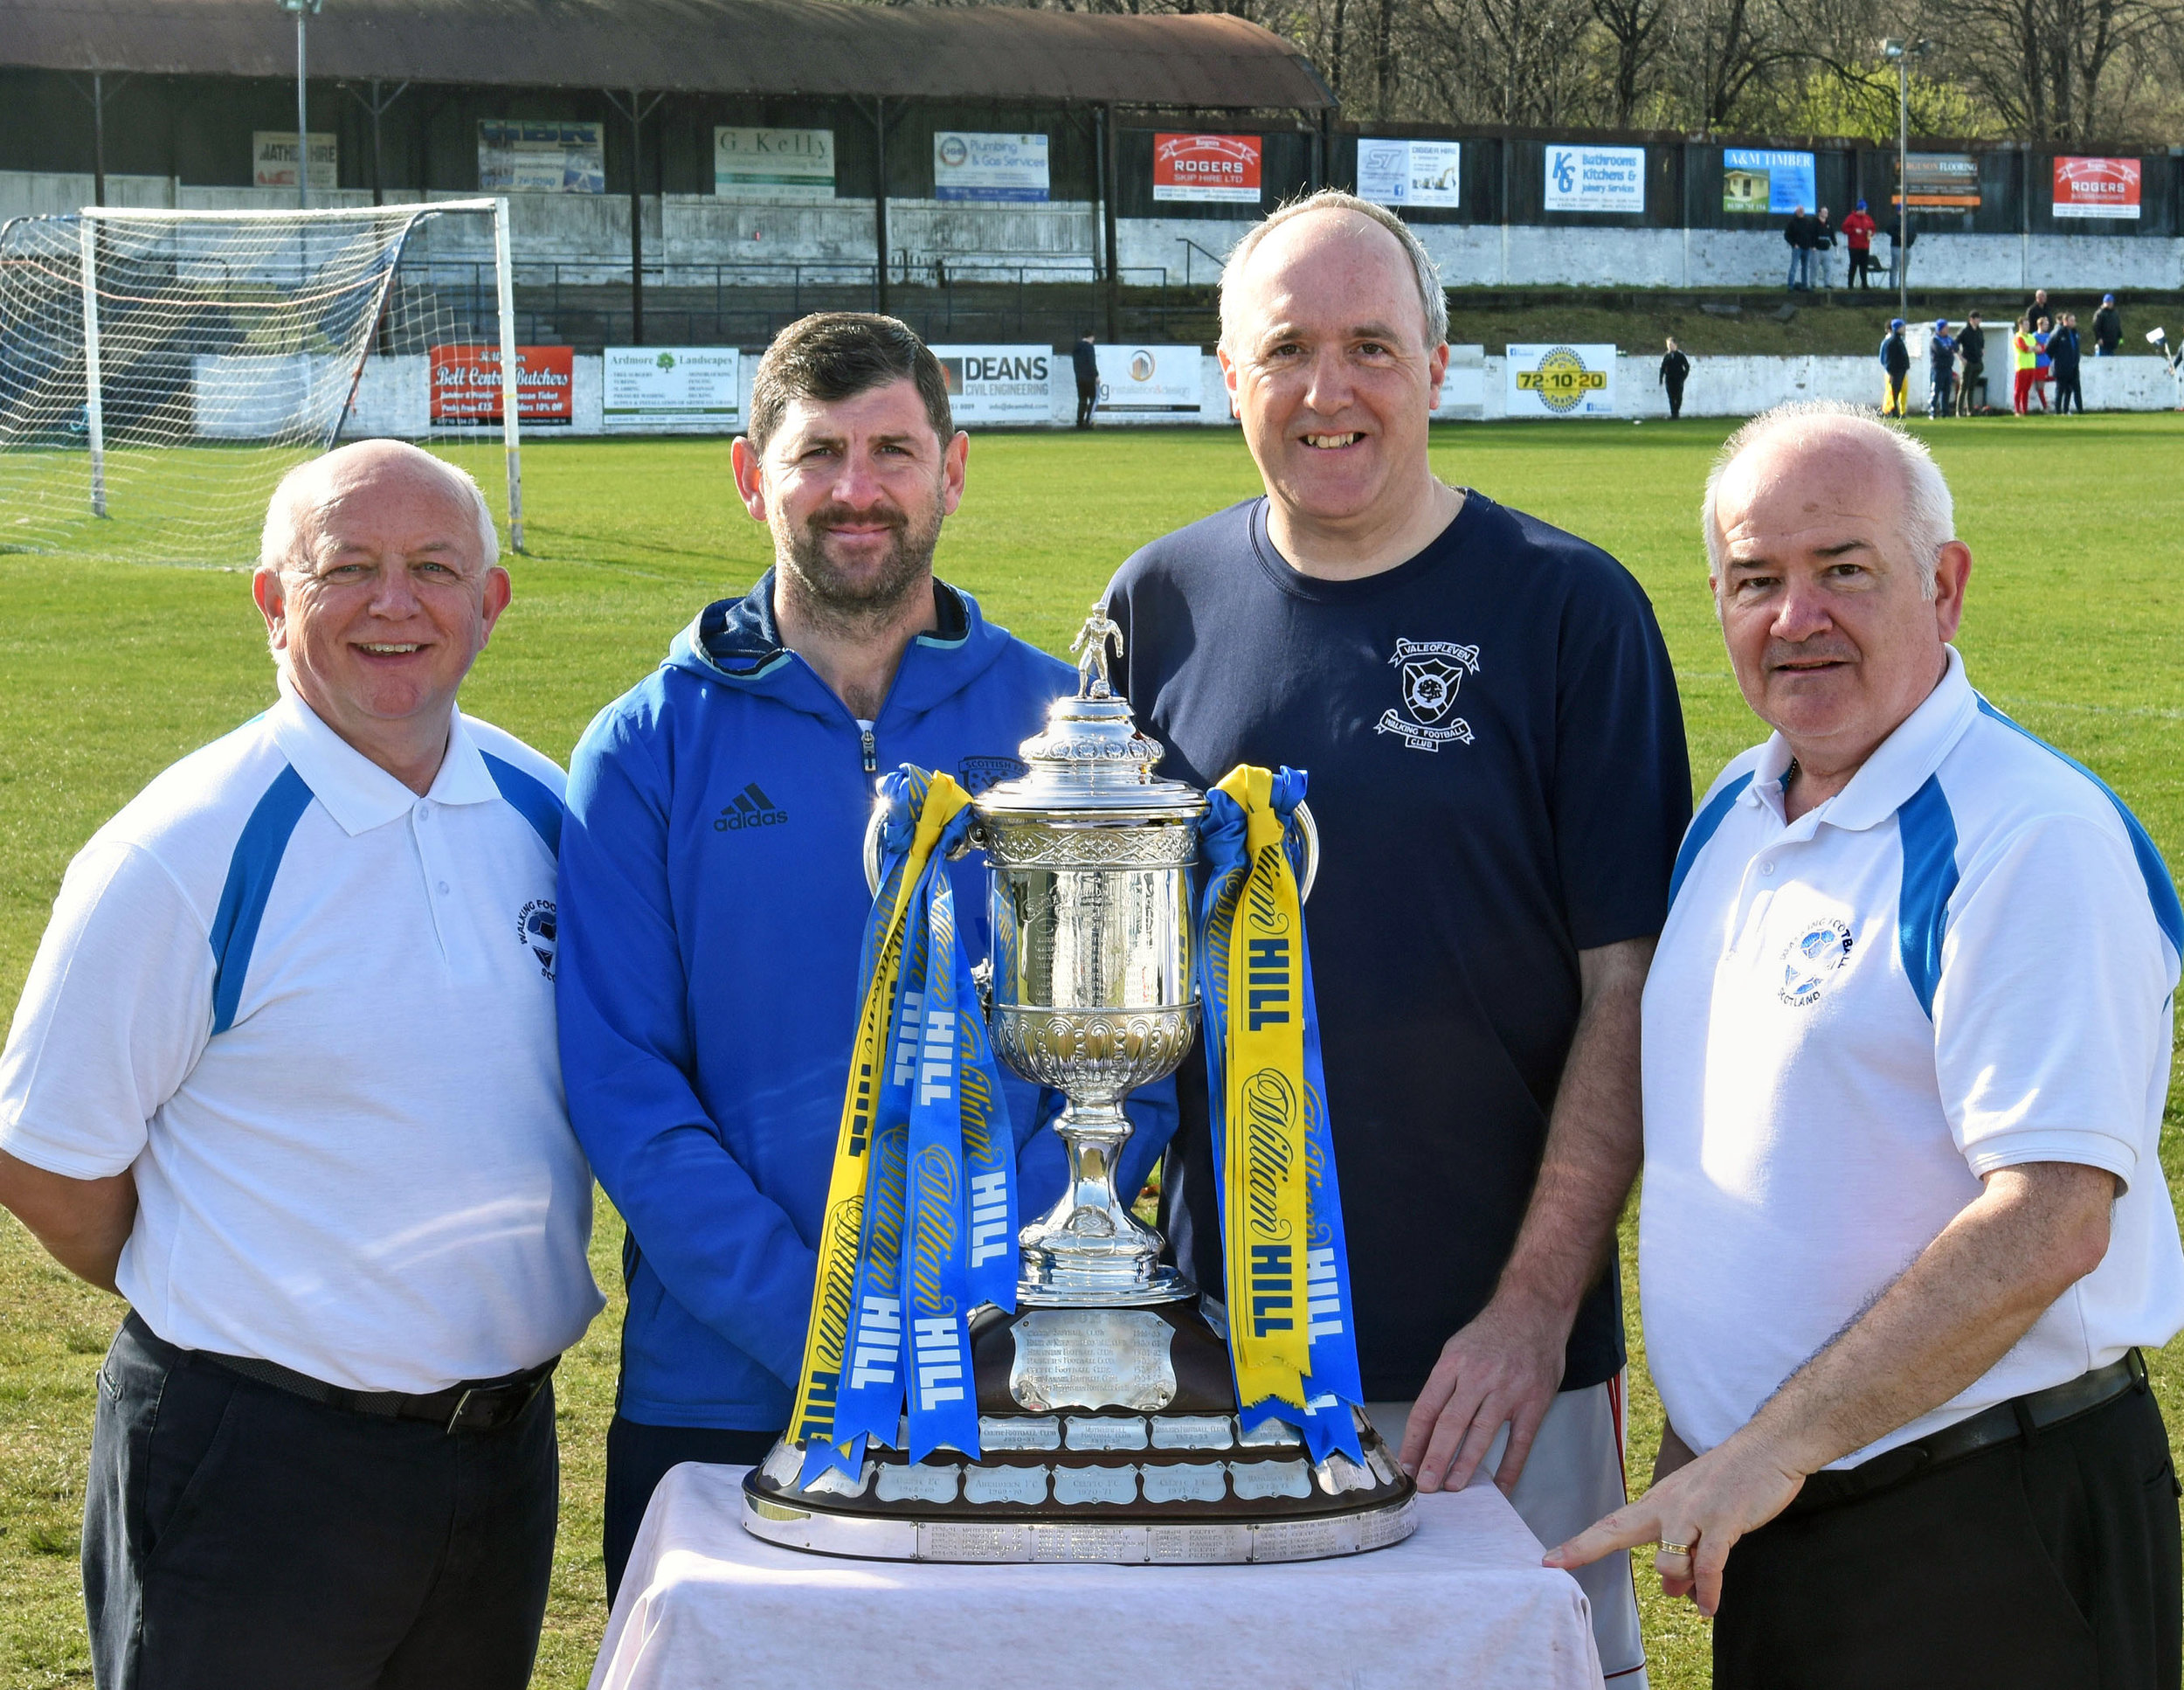 l-r Walking Football Scotland Treasurer, David Hyland, Alan Morgan, Central Region Manager, Scottish FA, Phil Dawson, Vale of Leven Walking Football Club and Gary McLaughlin, Chair of Walking Football Scotland.